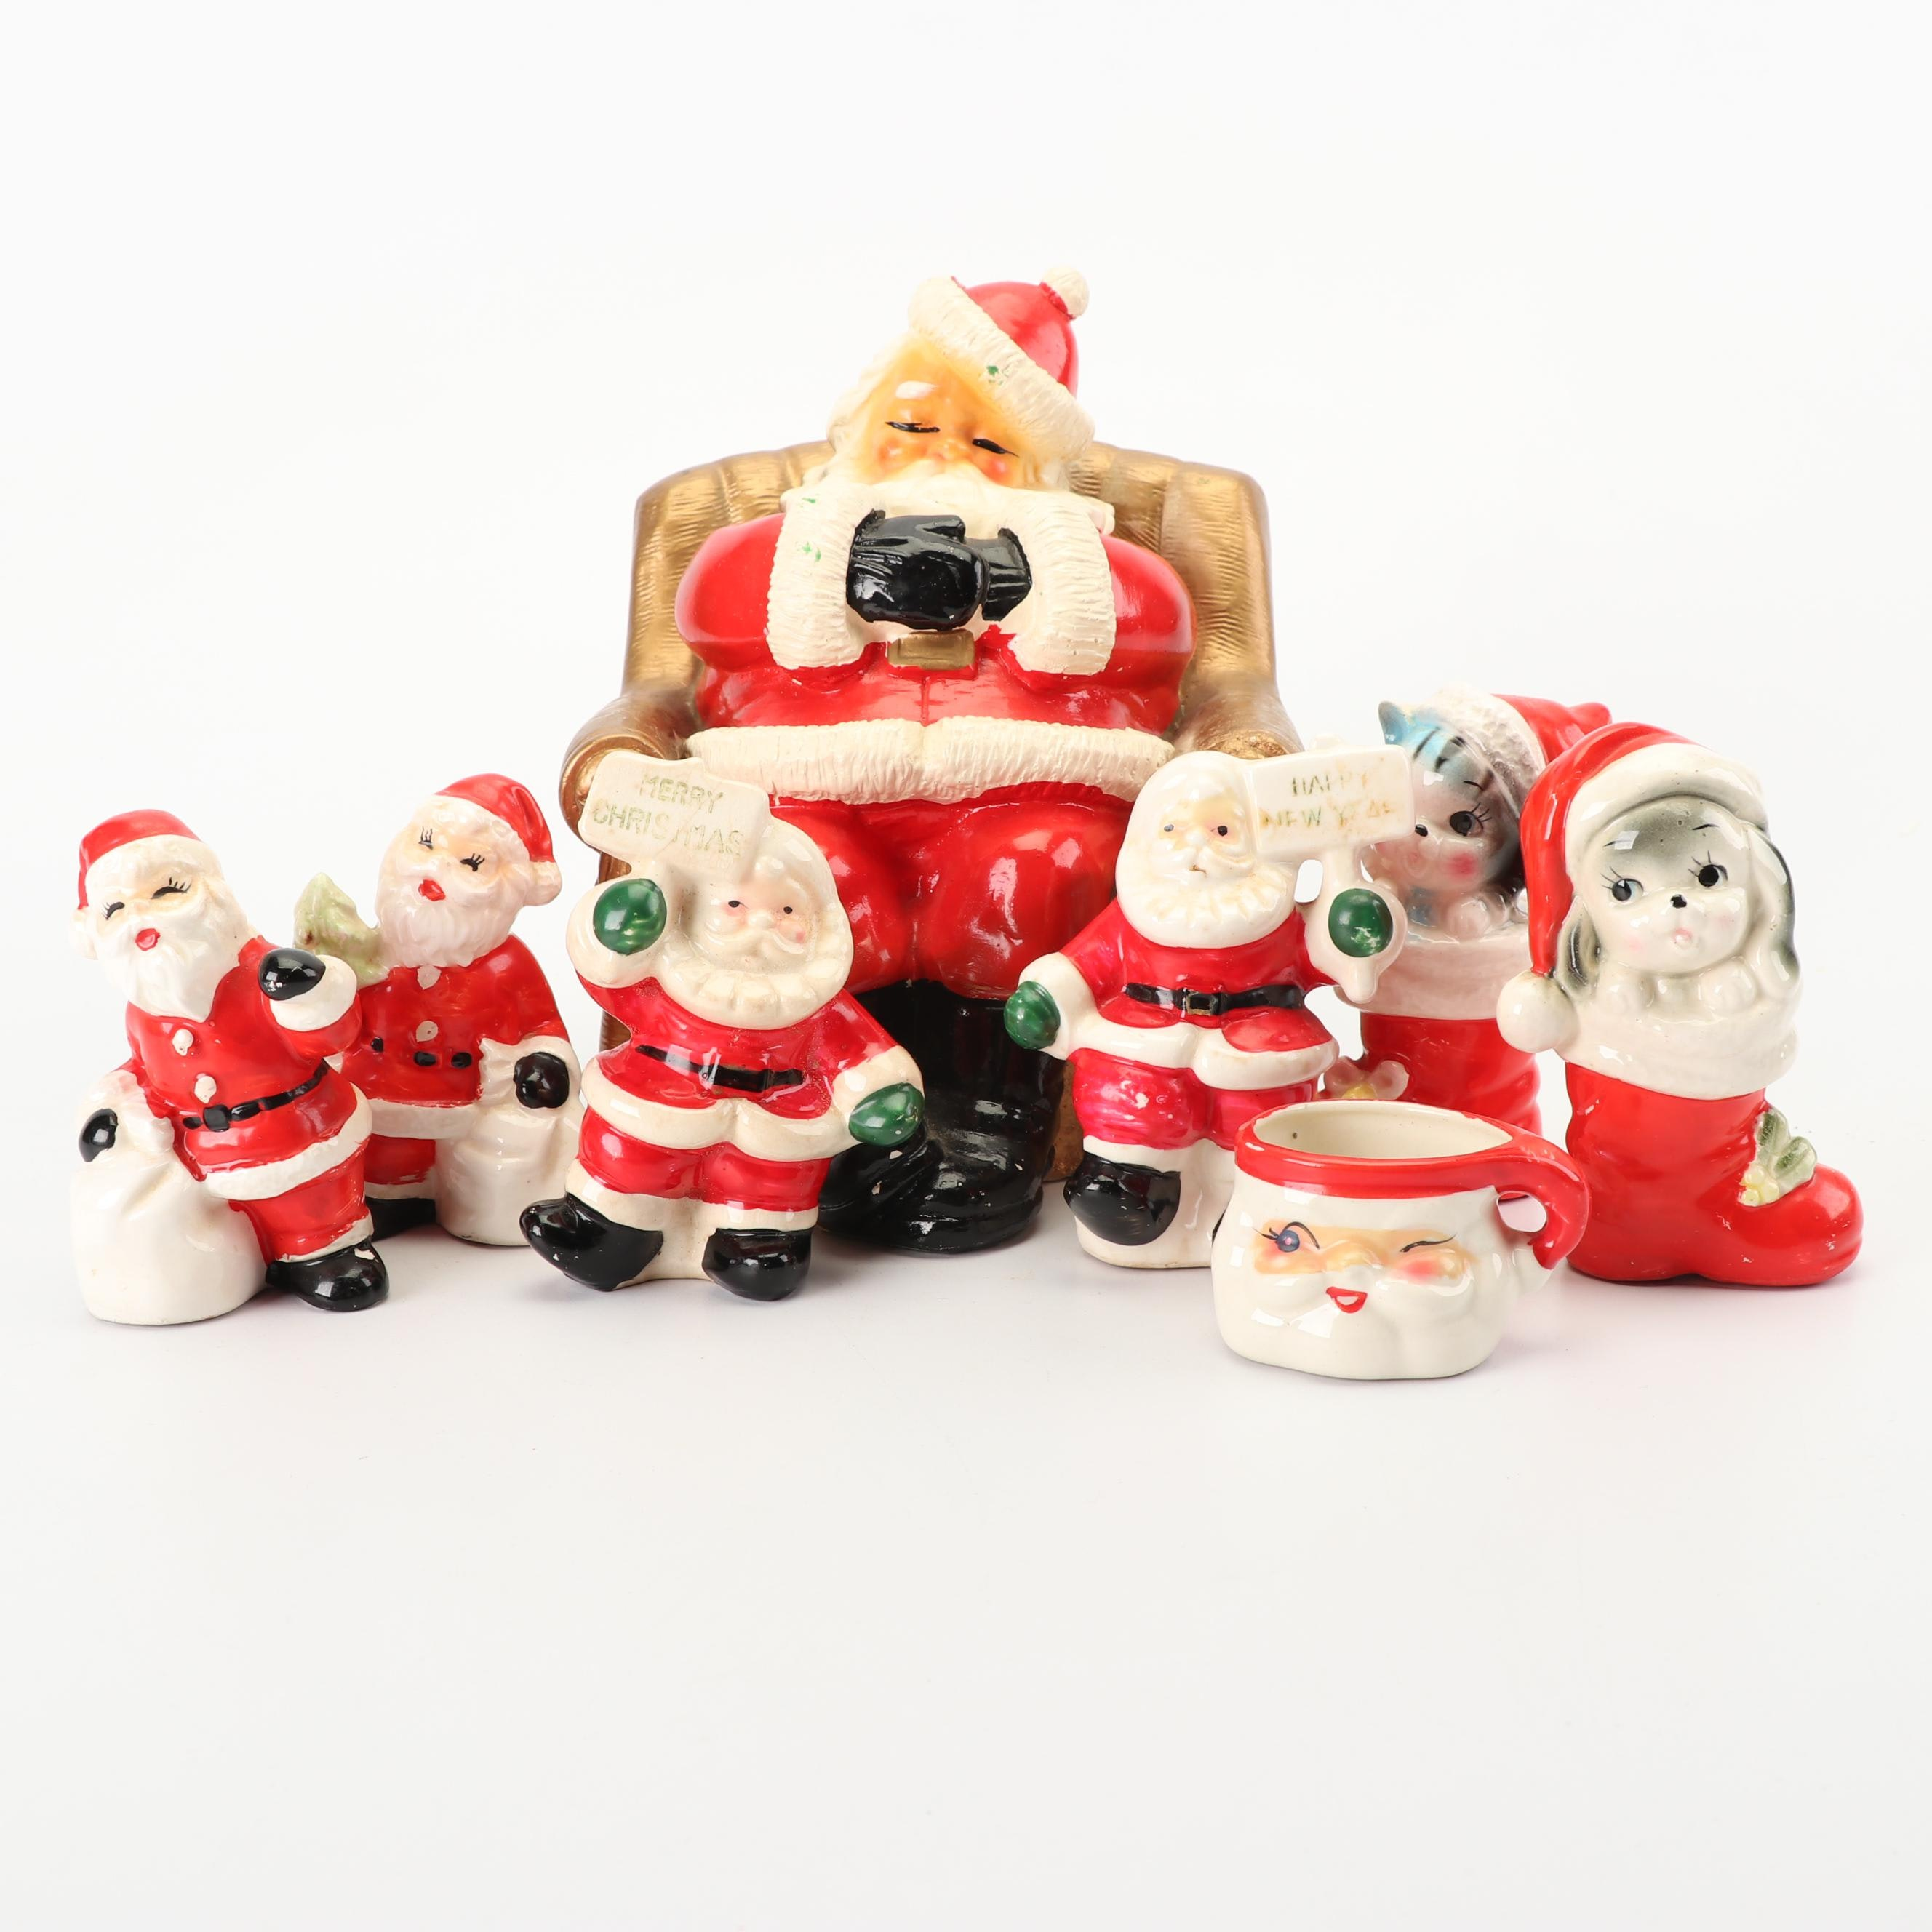 Christmas Themed Ceramic Coin Bank, Salt and Pepper Shakers, and Cup